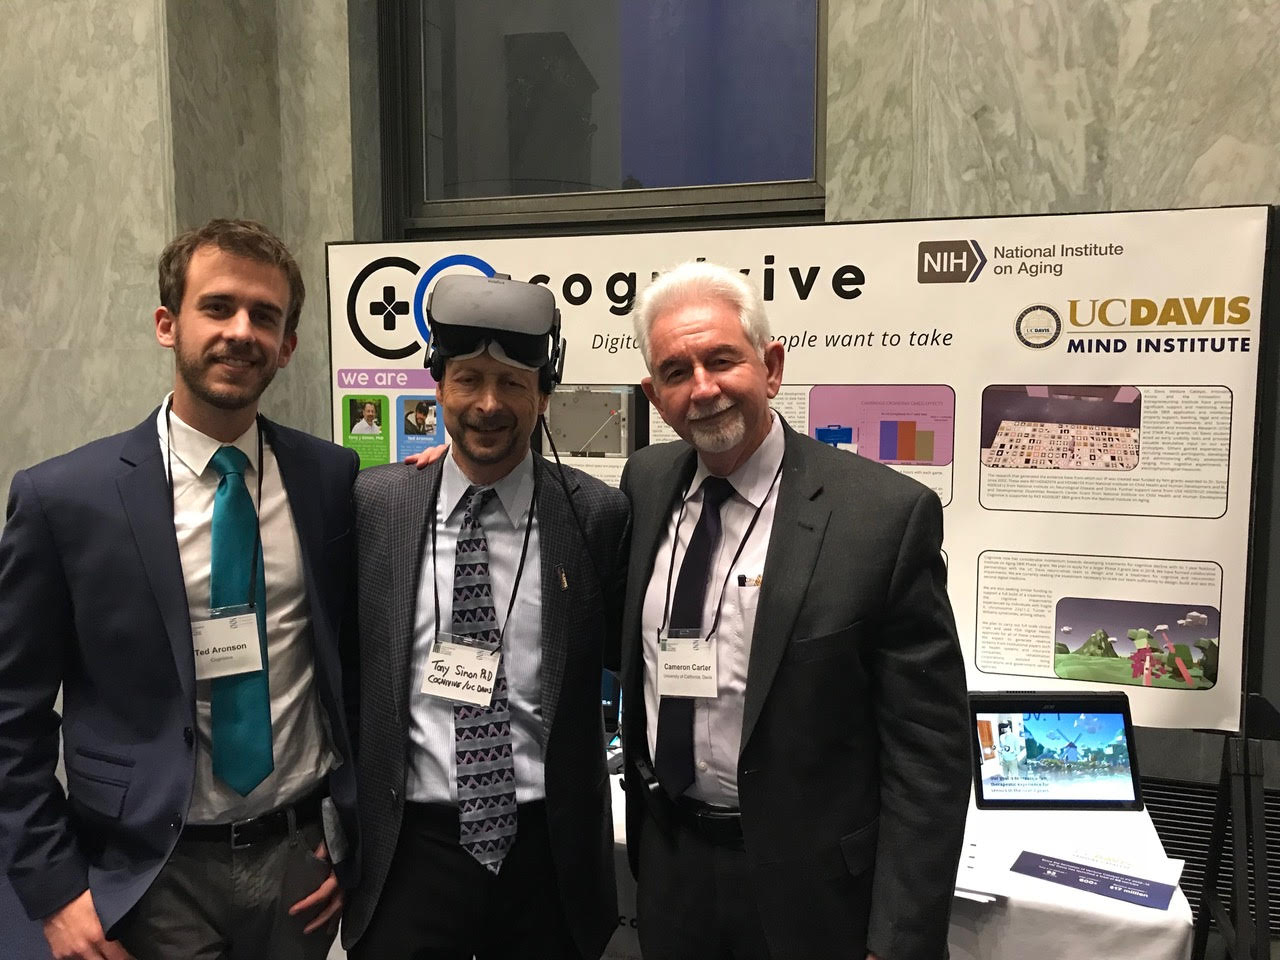 The Cognivive team and UCD Vice Chancellor Cameron Carter at the Rayburn House event